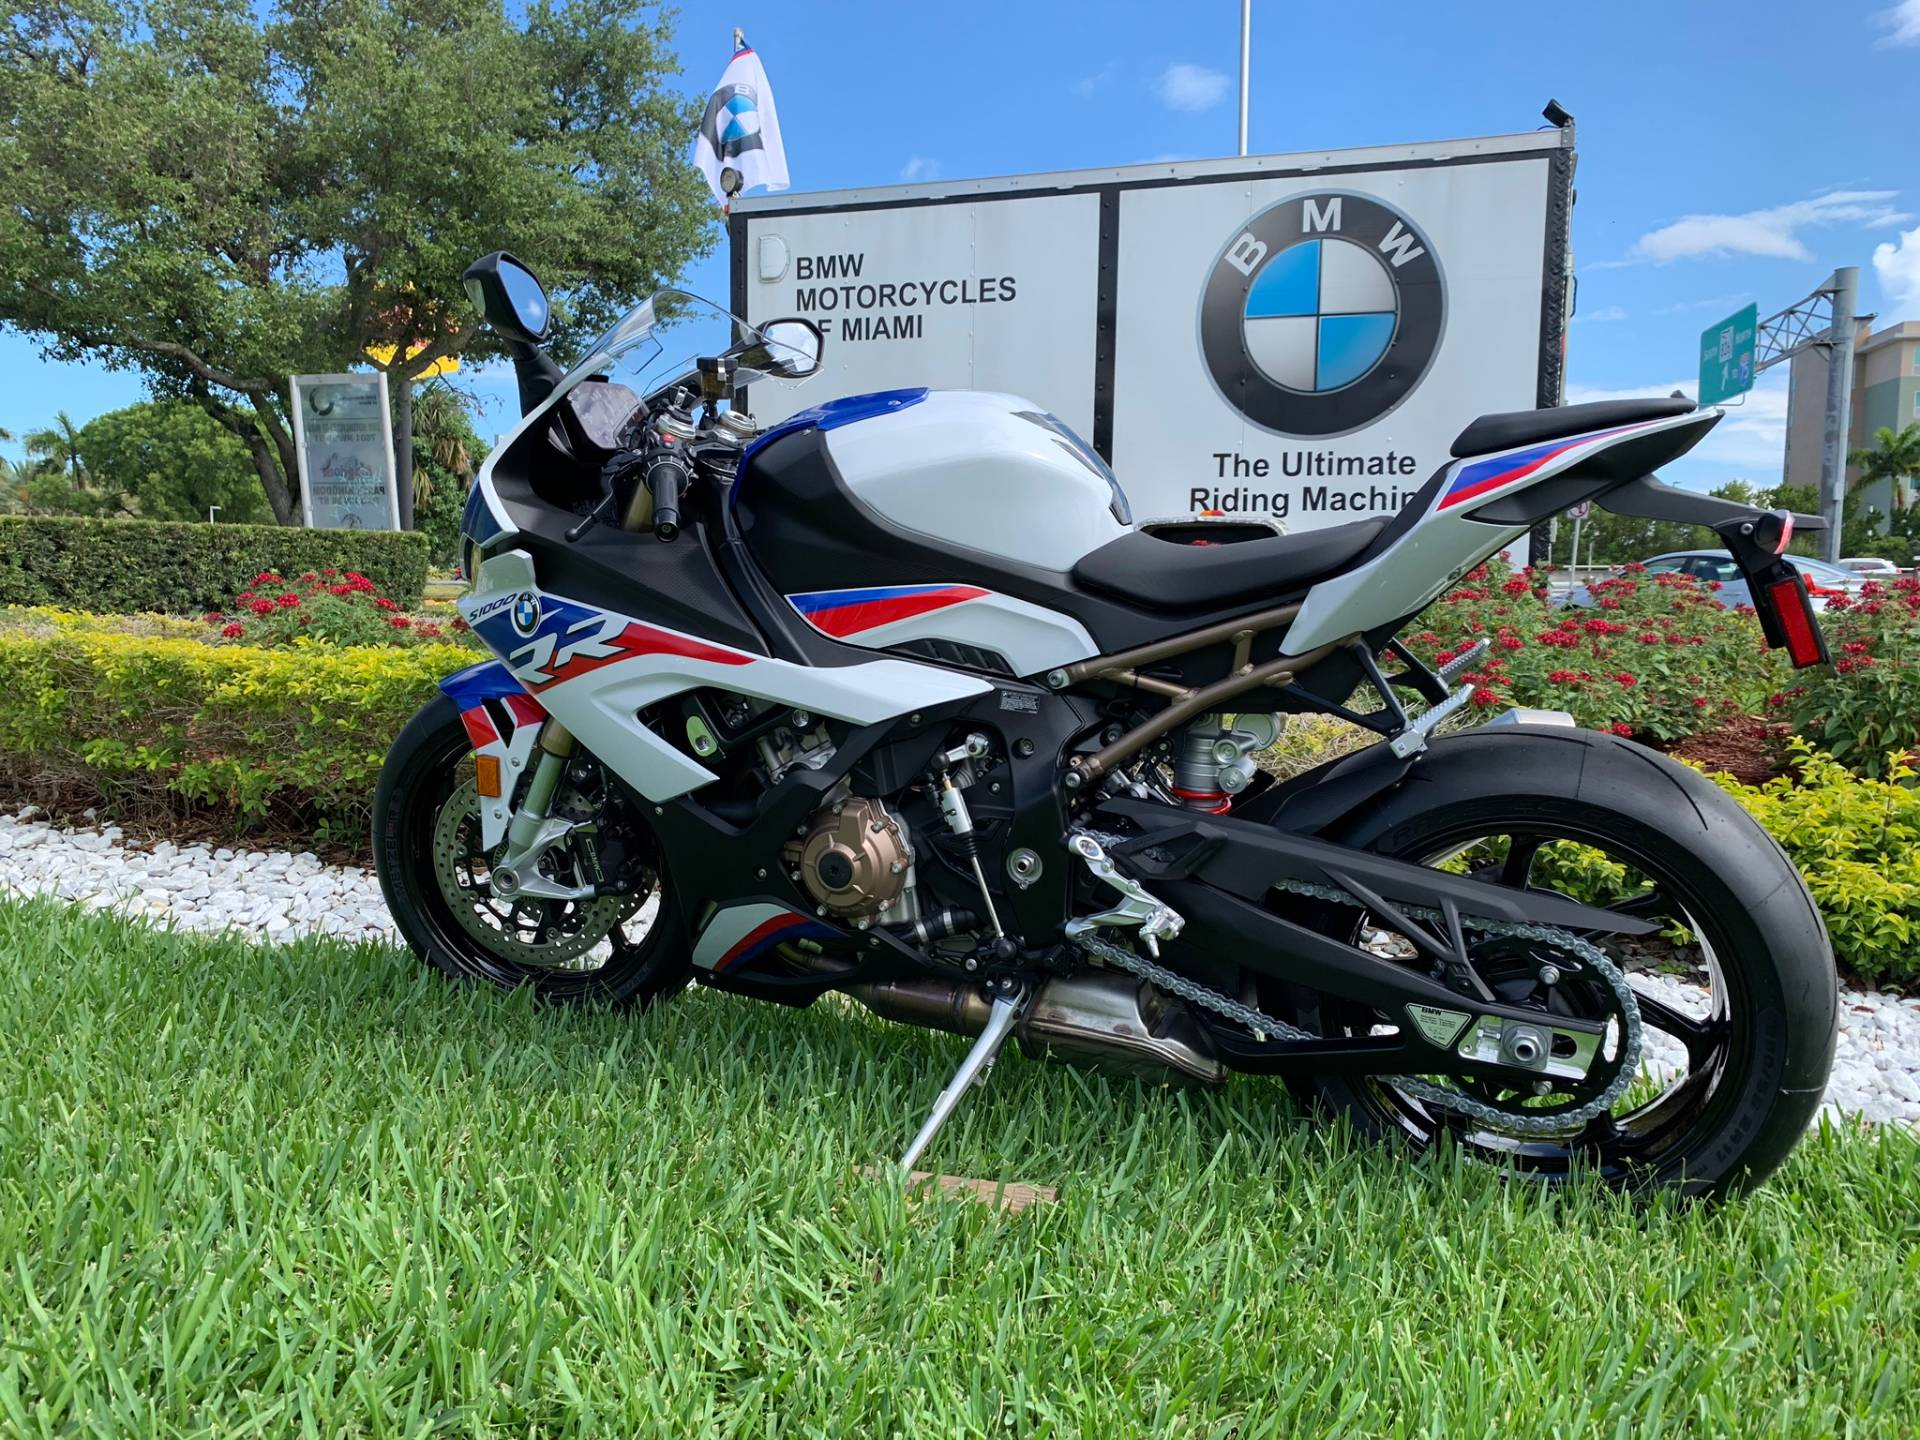 New 2020 BMW S 1000 RR for sale, BMW S 1000RR for sale, BMW Motorcycle S1000RR, new BMW RR, Sport. BMW Motorcycles of Miami, Motorcycles of Miami, Motorcycles Miami, New Motorcycles, Used Motorcycles, pre-owned. #BMWMotorcyclesOfMiami #MotorcyclesOfMiami #MotorcyclesMiami - Photo 8